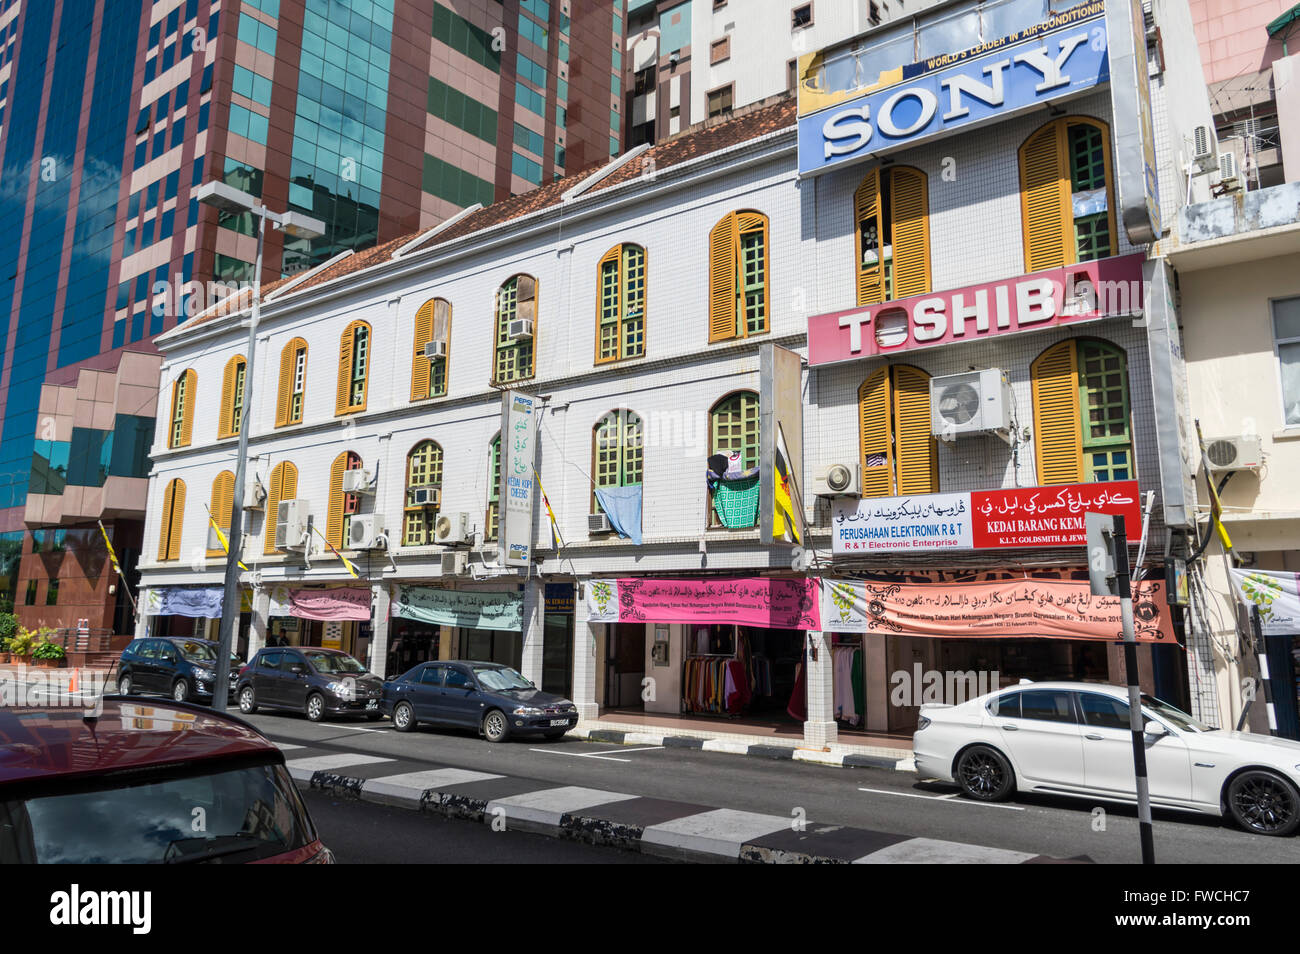 Row of building in downtown Bandar Seri Begawan, the capital of the sultanate of Brunei Darussalam. - Stock Image